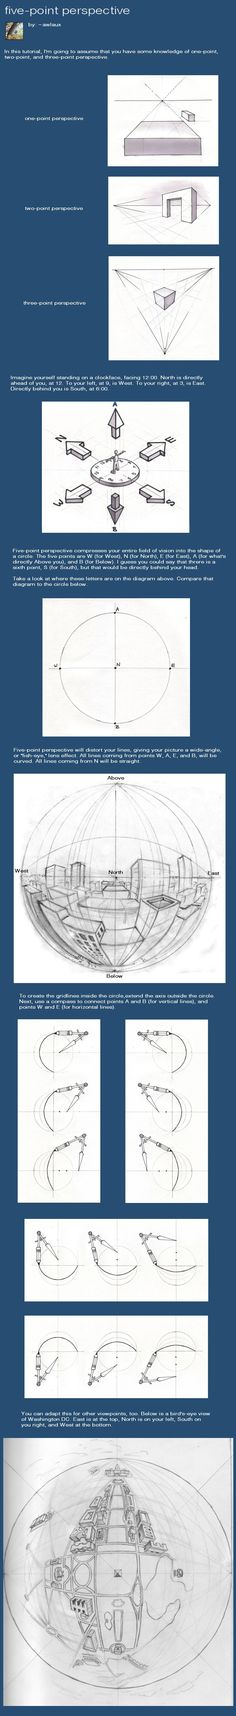 Five Pt. Perspective Tutorial by ~awlaux on deviantART